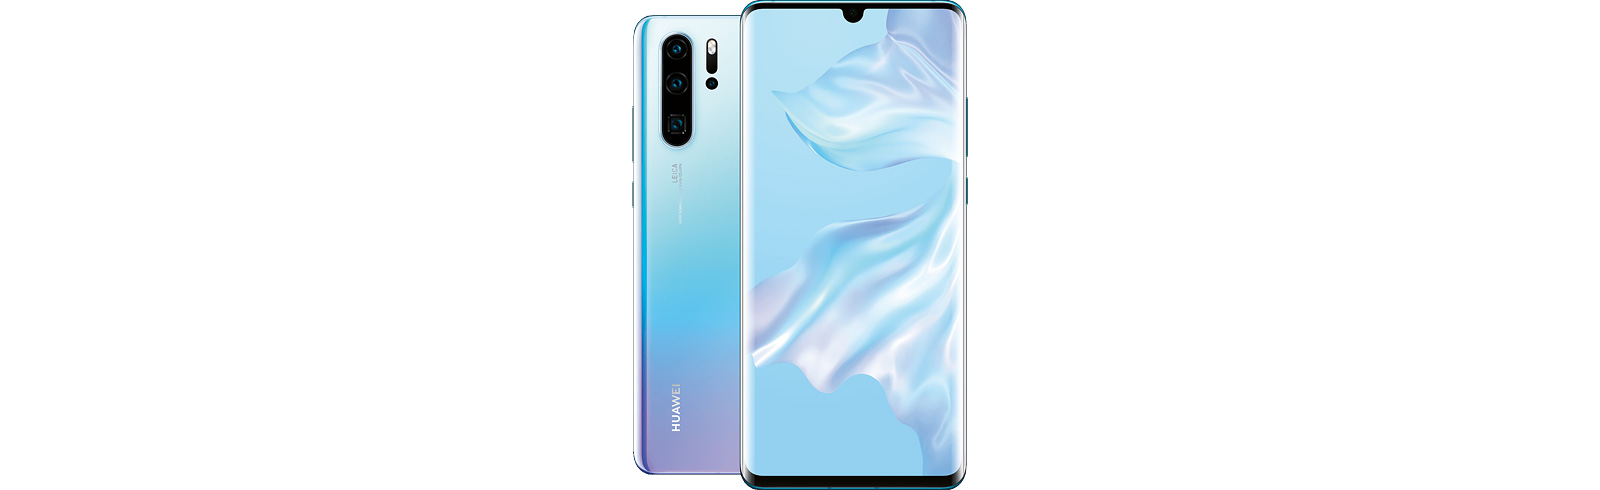 Huawei leaks by mistake the Huawei P30 and Huawei P30 Pro